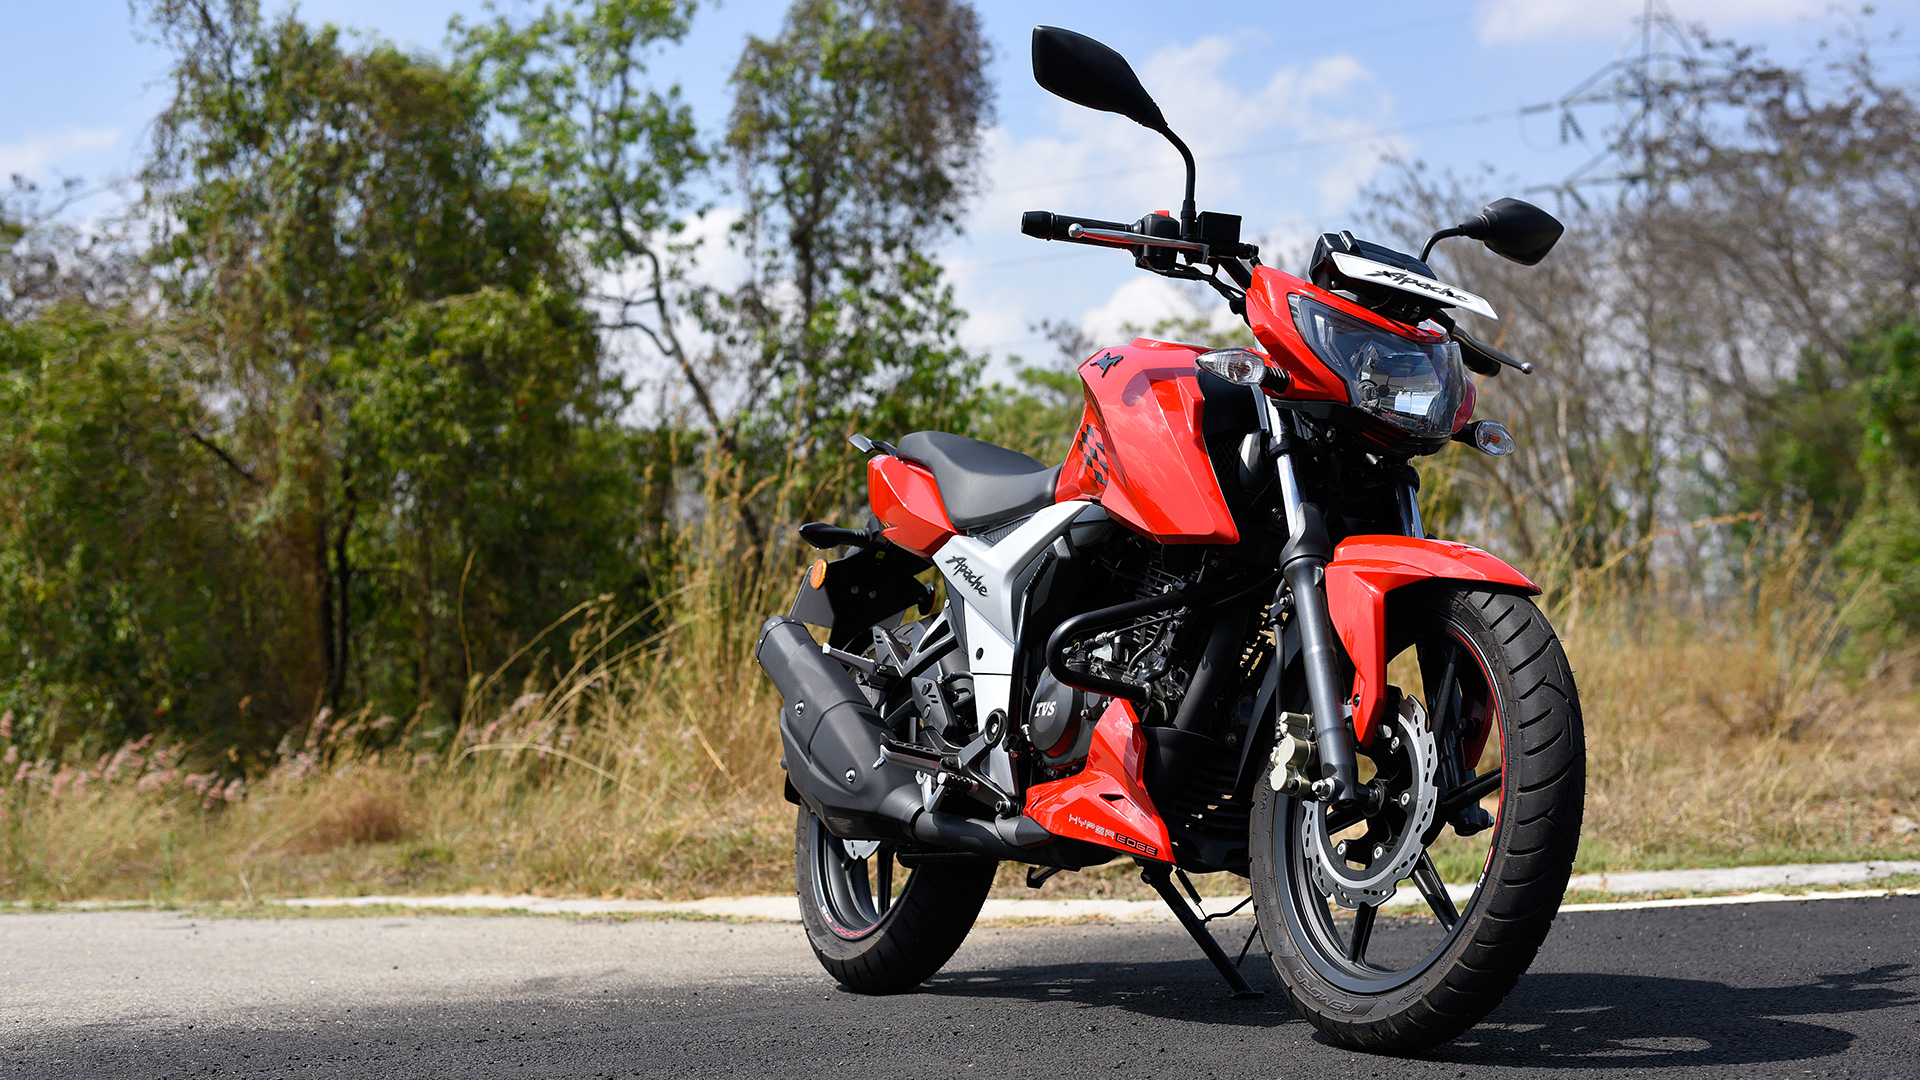 Tvs Apache Rtr 160 4v 2018 Price Mileage Reviews